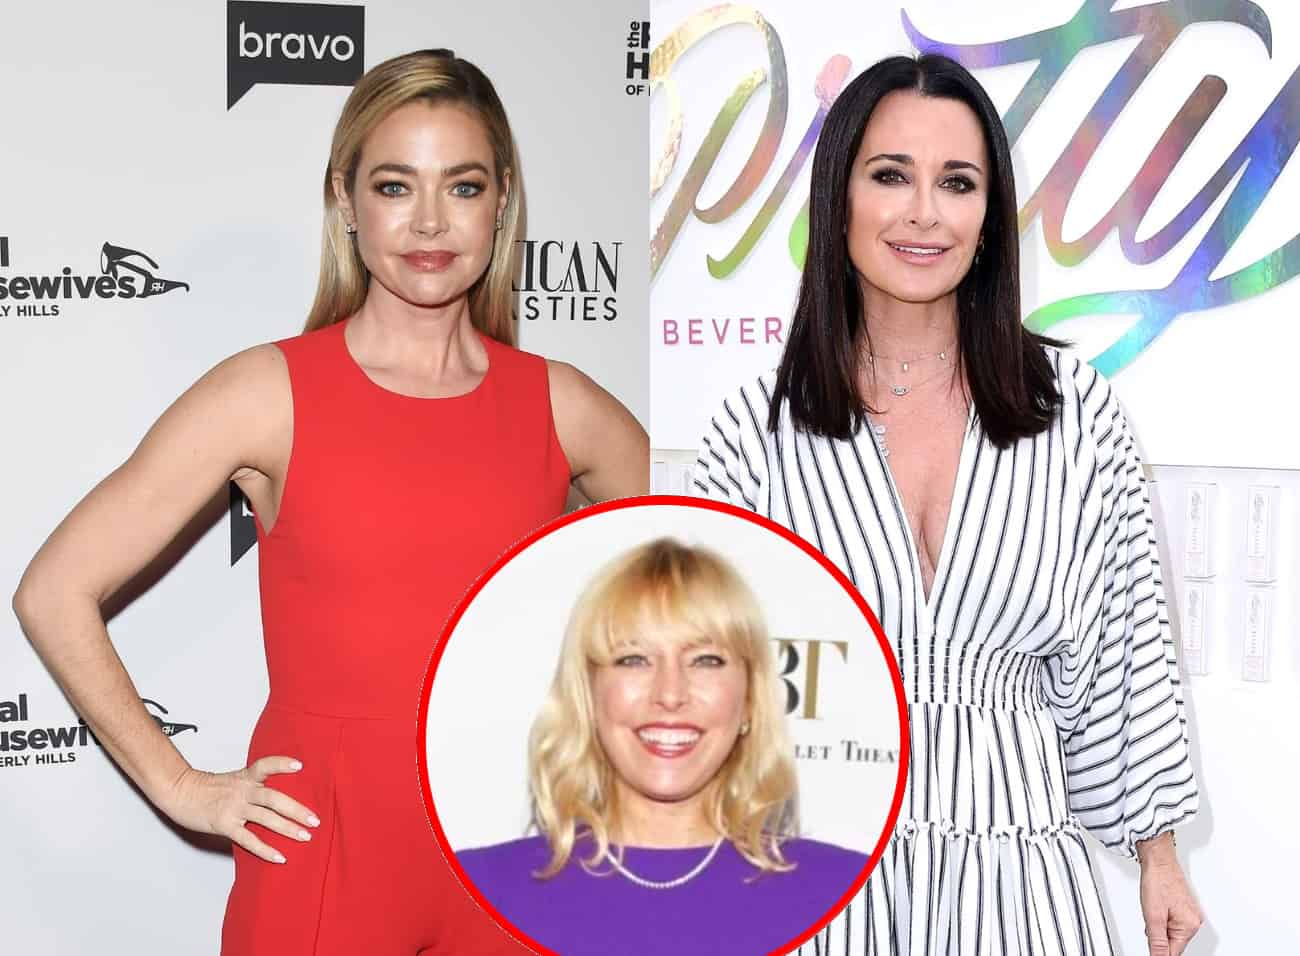 """RHOBH's Denise Richards Shades Kyle Richards Again for """"Ragamuffin"""" Diss as Sutton Weighs in, Plus Denise Shares Her Thoughts About the Comment Being Used as a """"Term of Endearment"""""""